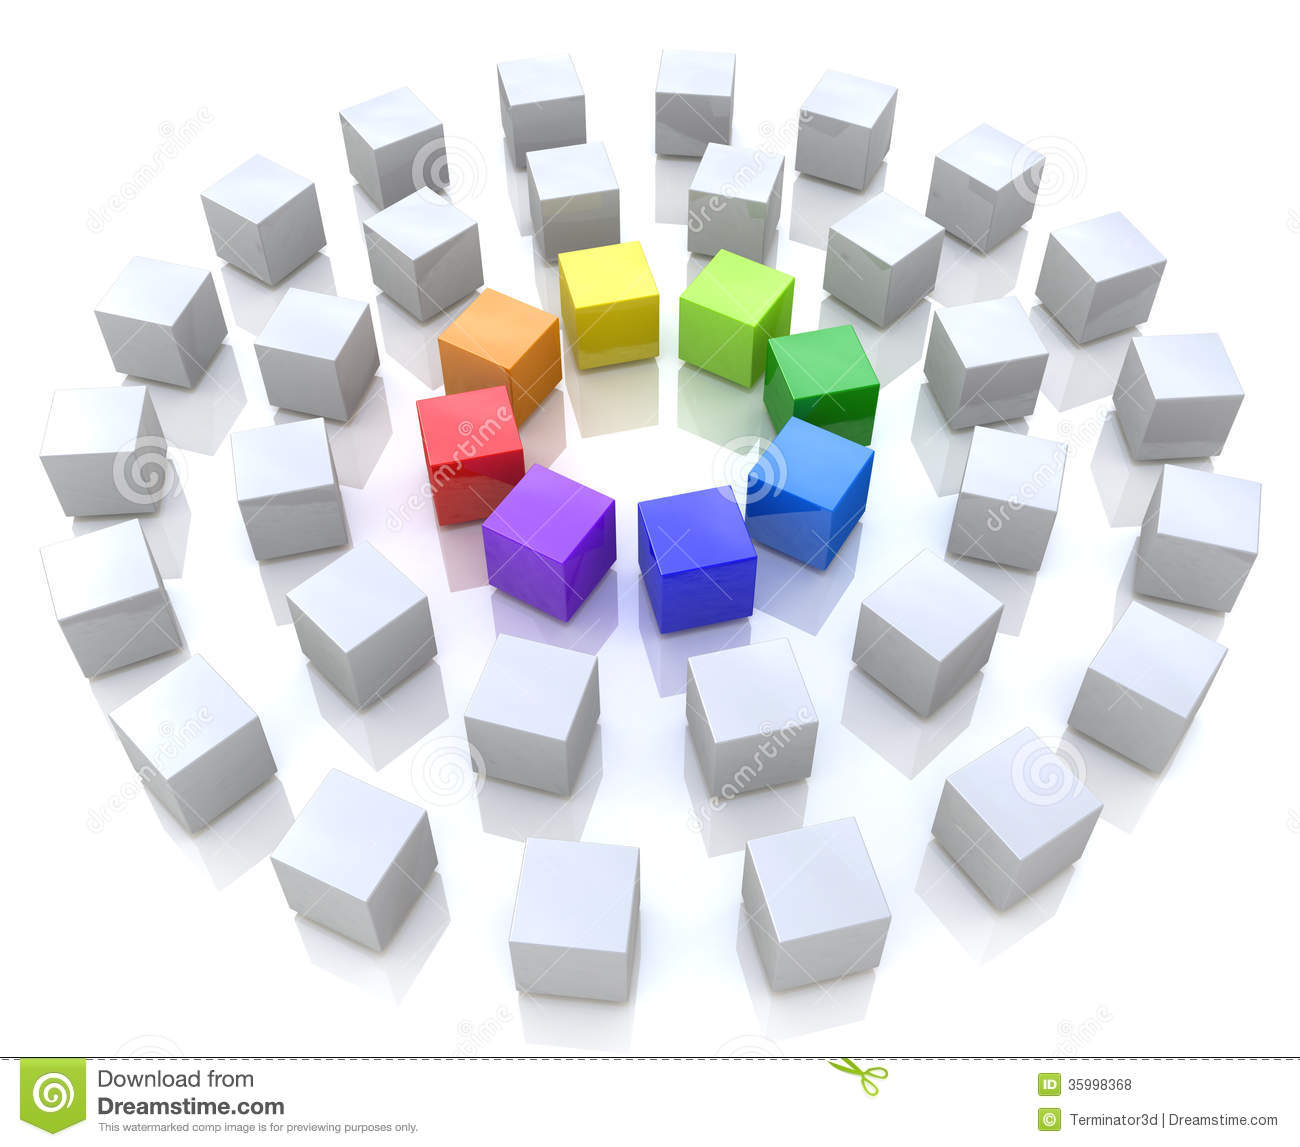 Abstract unity royalty free stock photos image 35998368 for Unity 3d room design